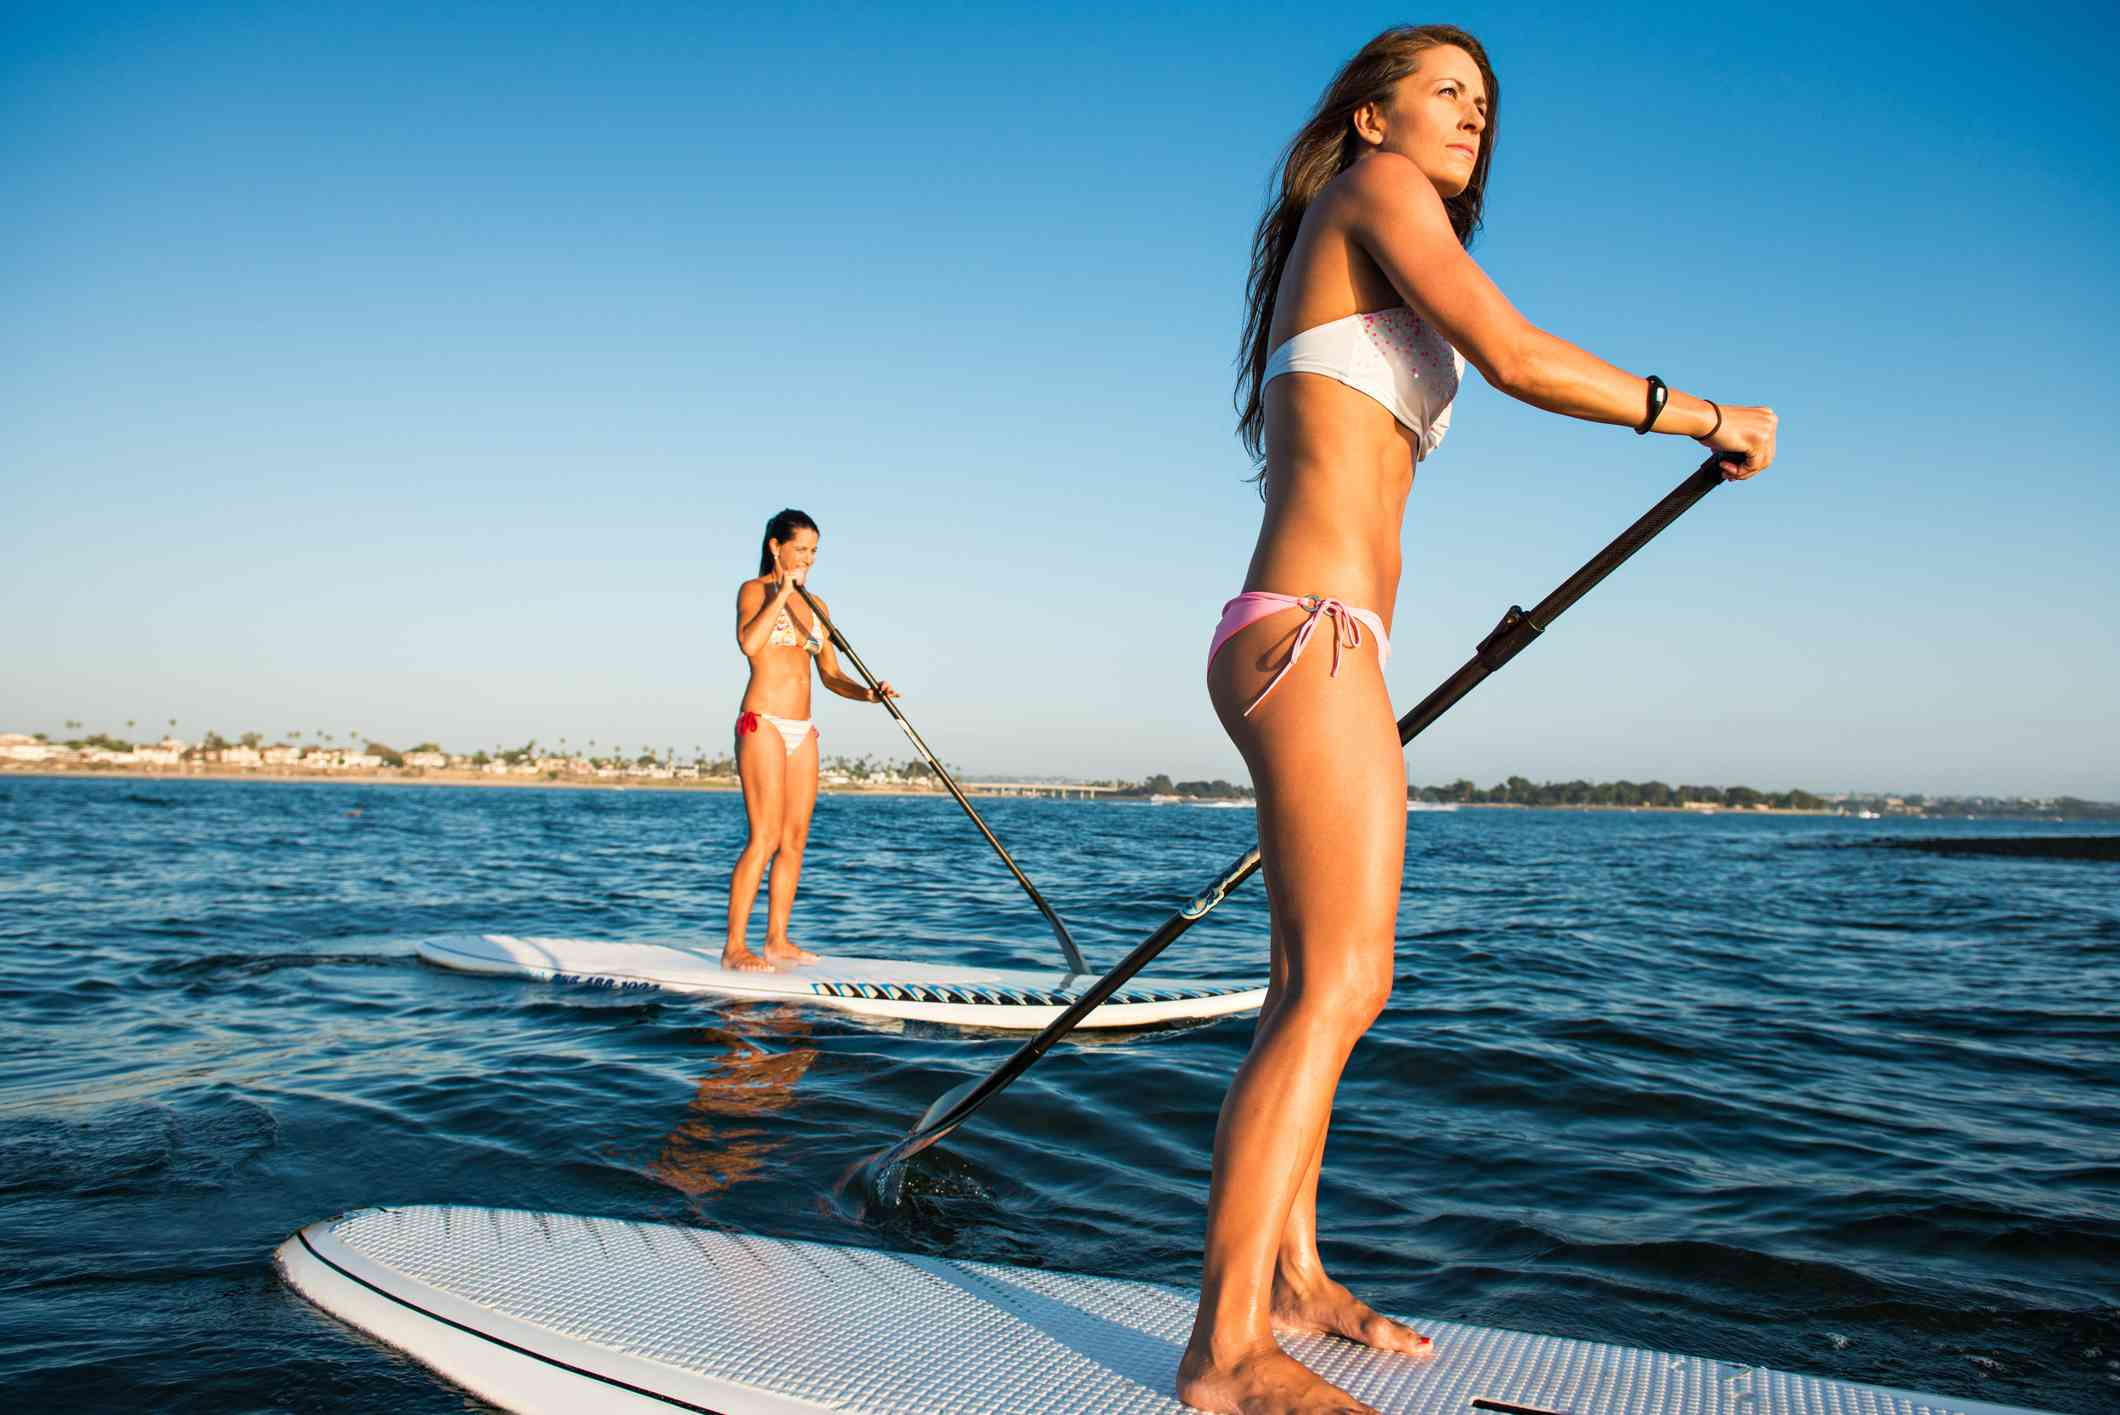 Stand Up Paddleboarding in Mission Bay, San Diego